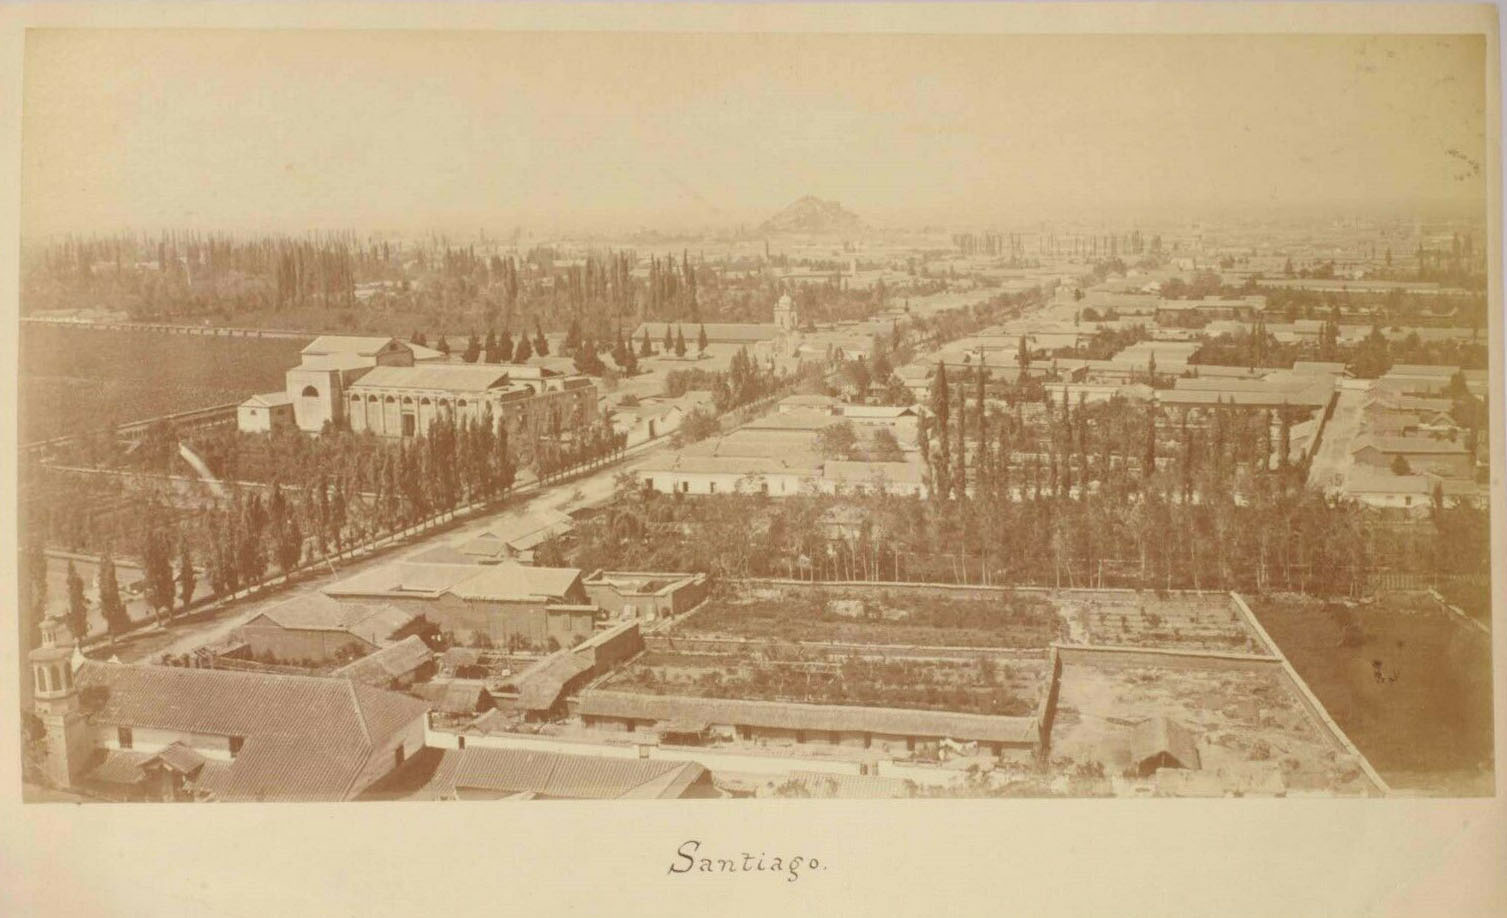 Enterreno - Fotos históricas de chile - fotos antiguas de Chile - Calle Recoleta en 1870